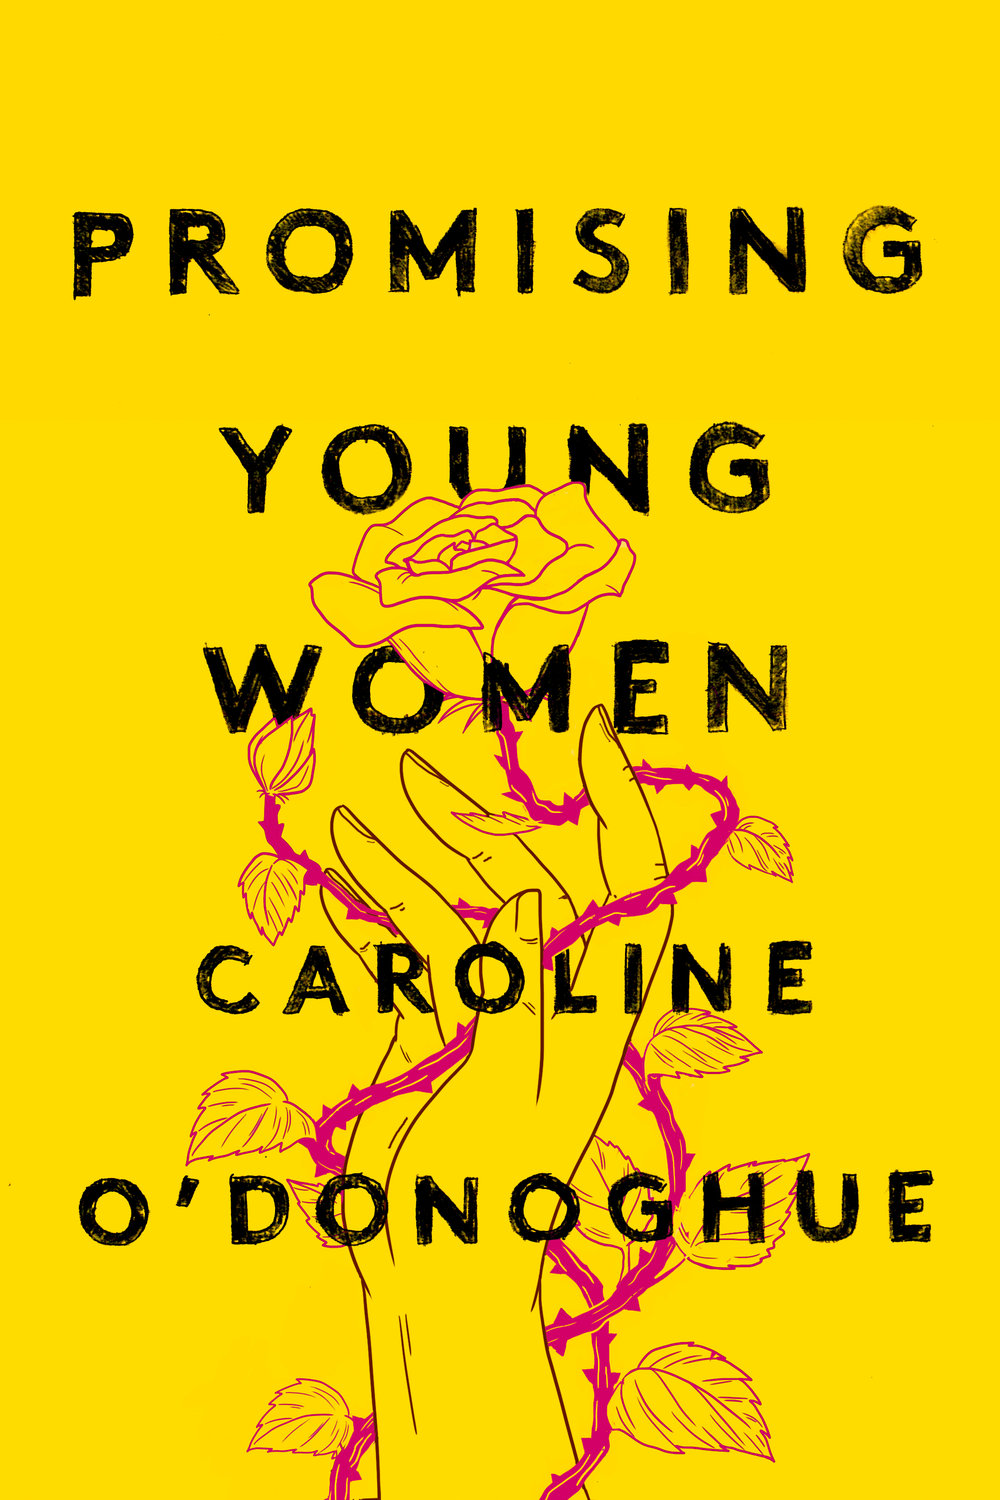 PromisingYoungWomen_cover (1).jpg